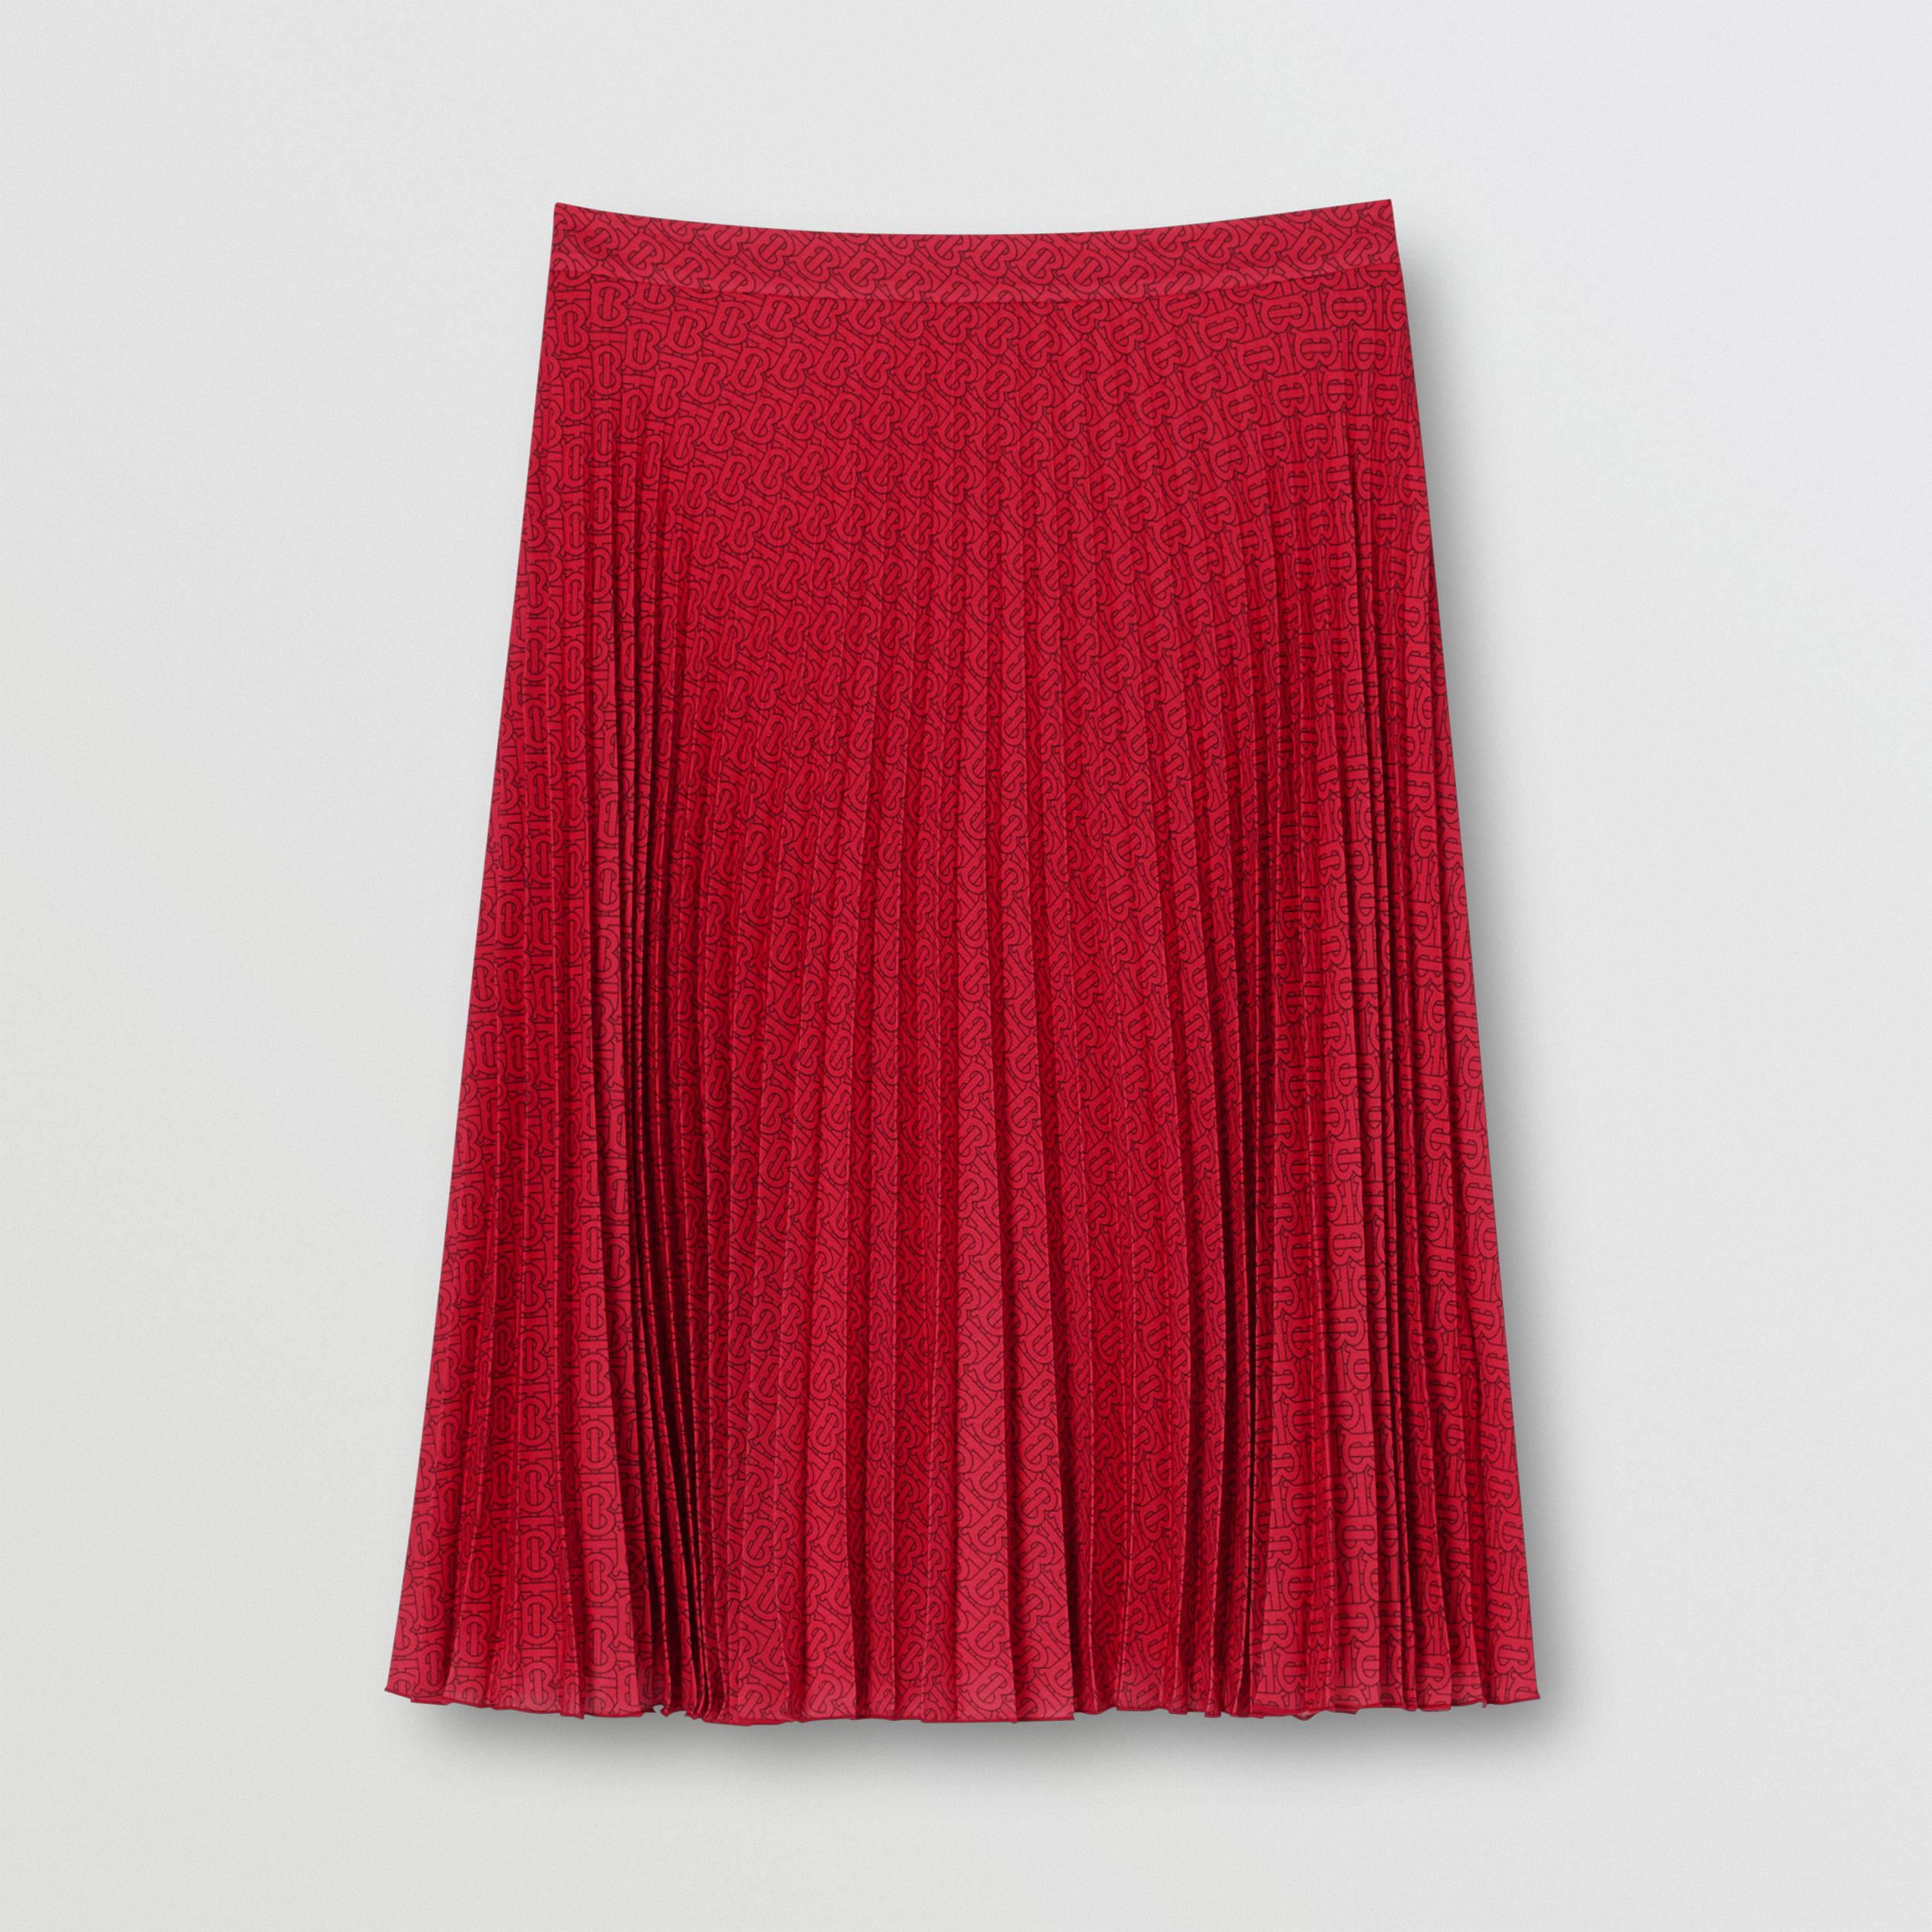 Monogram Print Pleated Skirt in Bright Red - Women | Burberry Hong Kong S.A.R. - 4